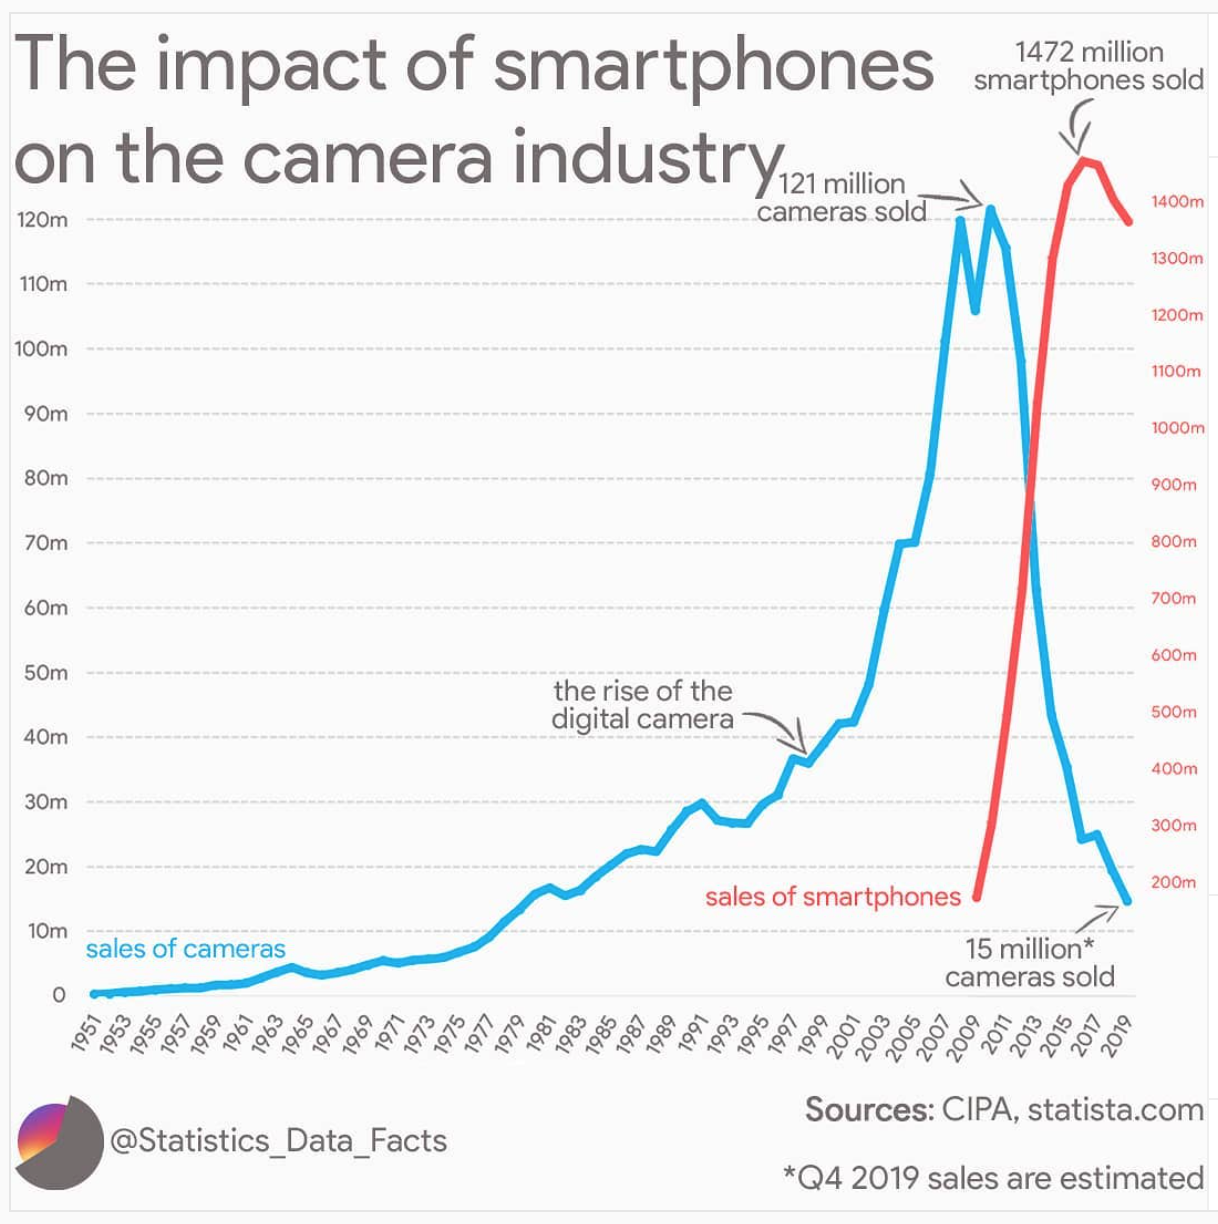 Chart showing the relation between the rise of smartphone sales and fall of camera sales in the last decade.